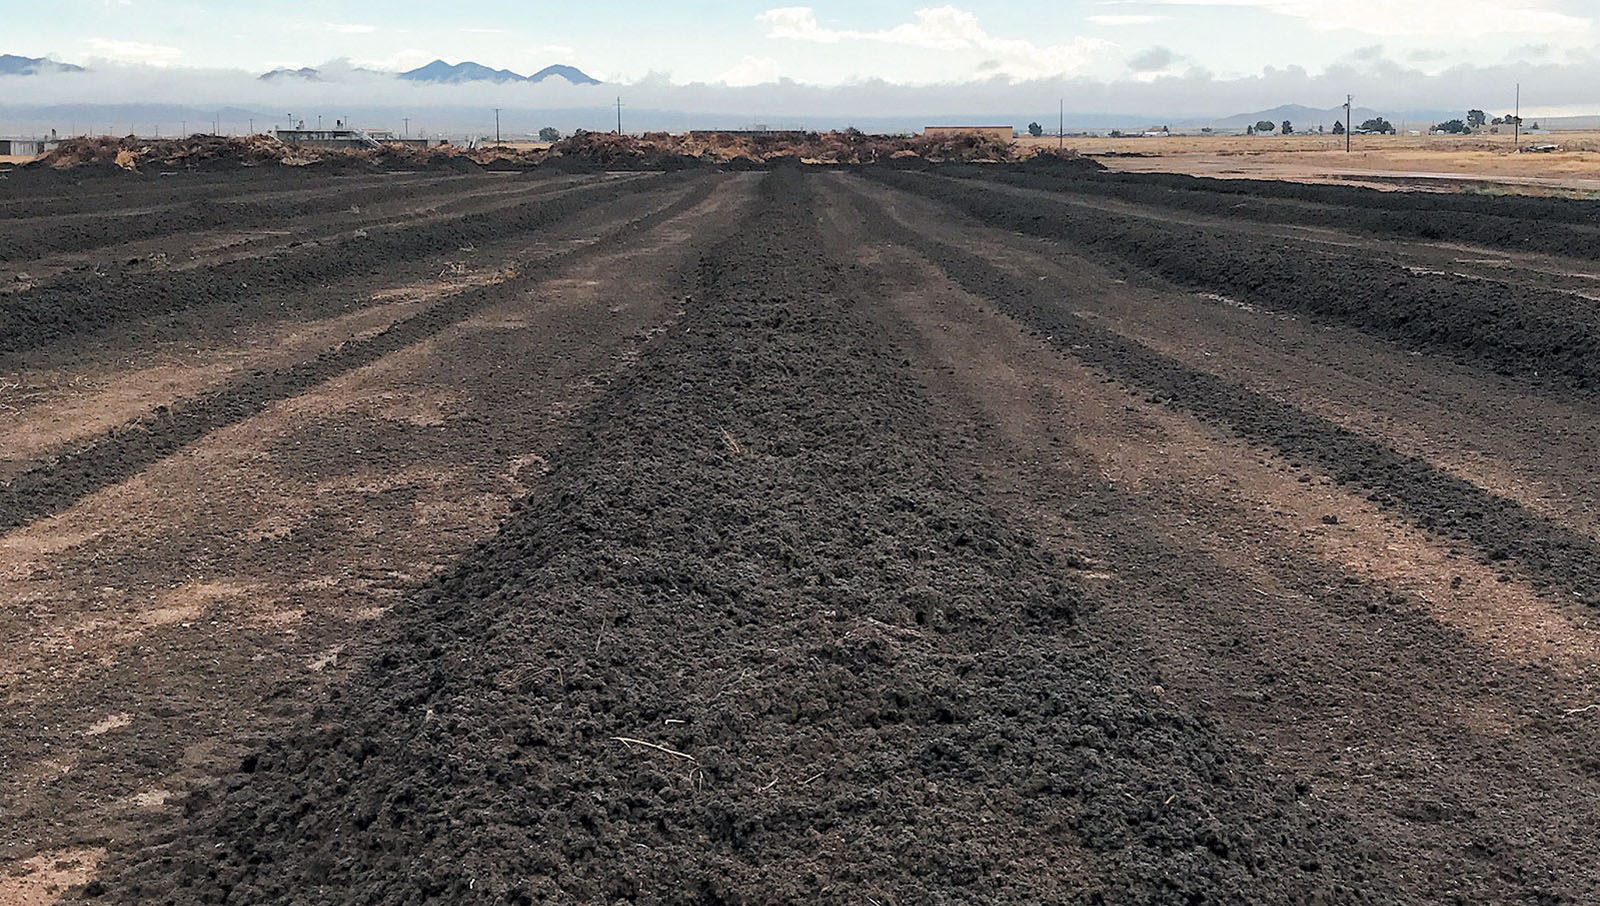 Clean City Commission addresses composting in Kingman